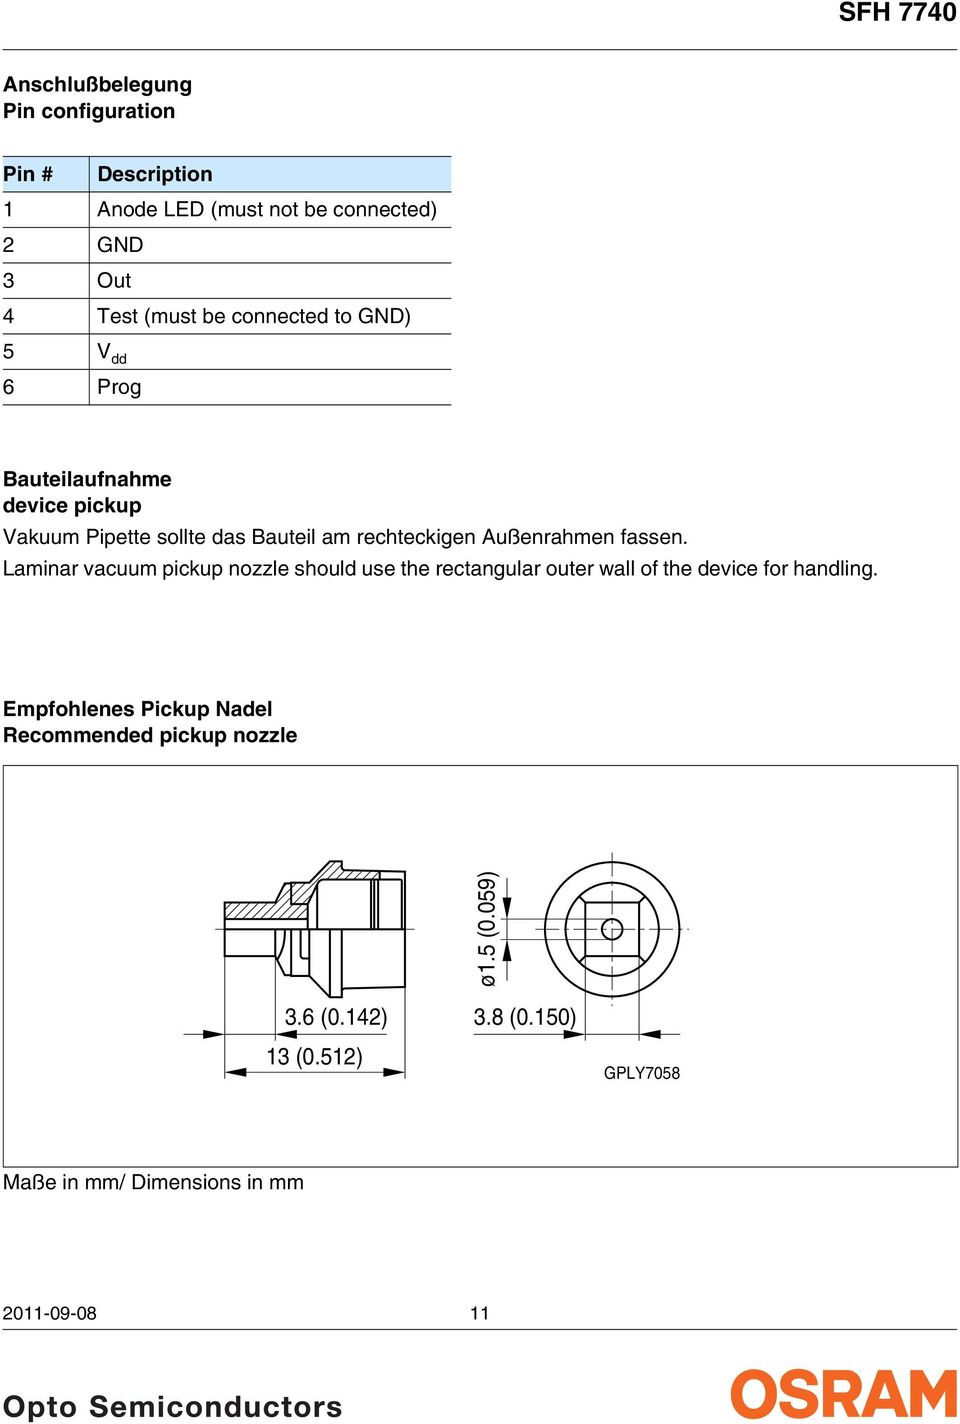 fassen. Laminar vacuum pickup nozzle should use the rectangular outer wall of the device for handling.